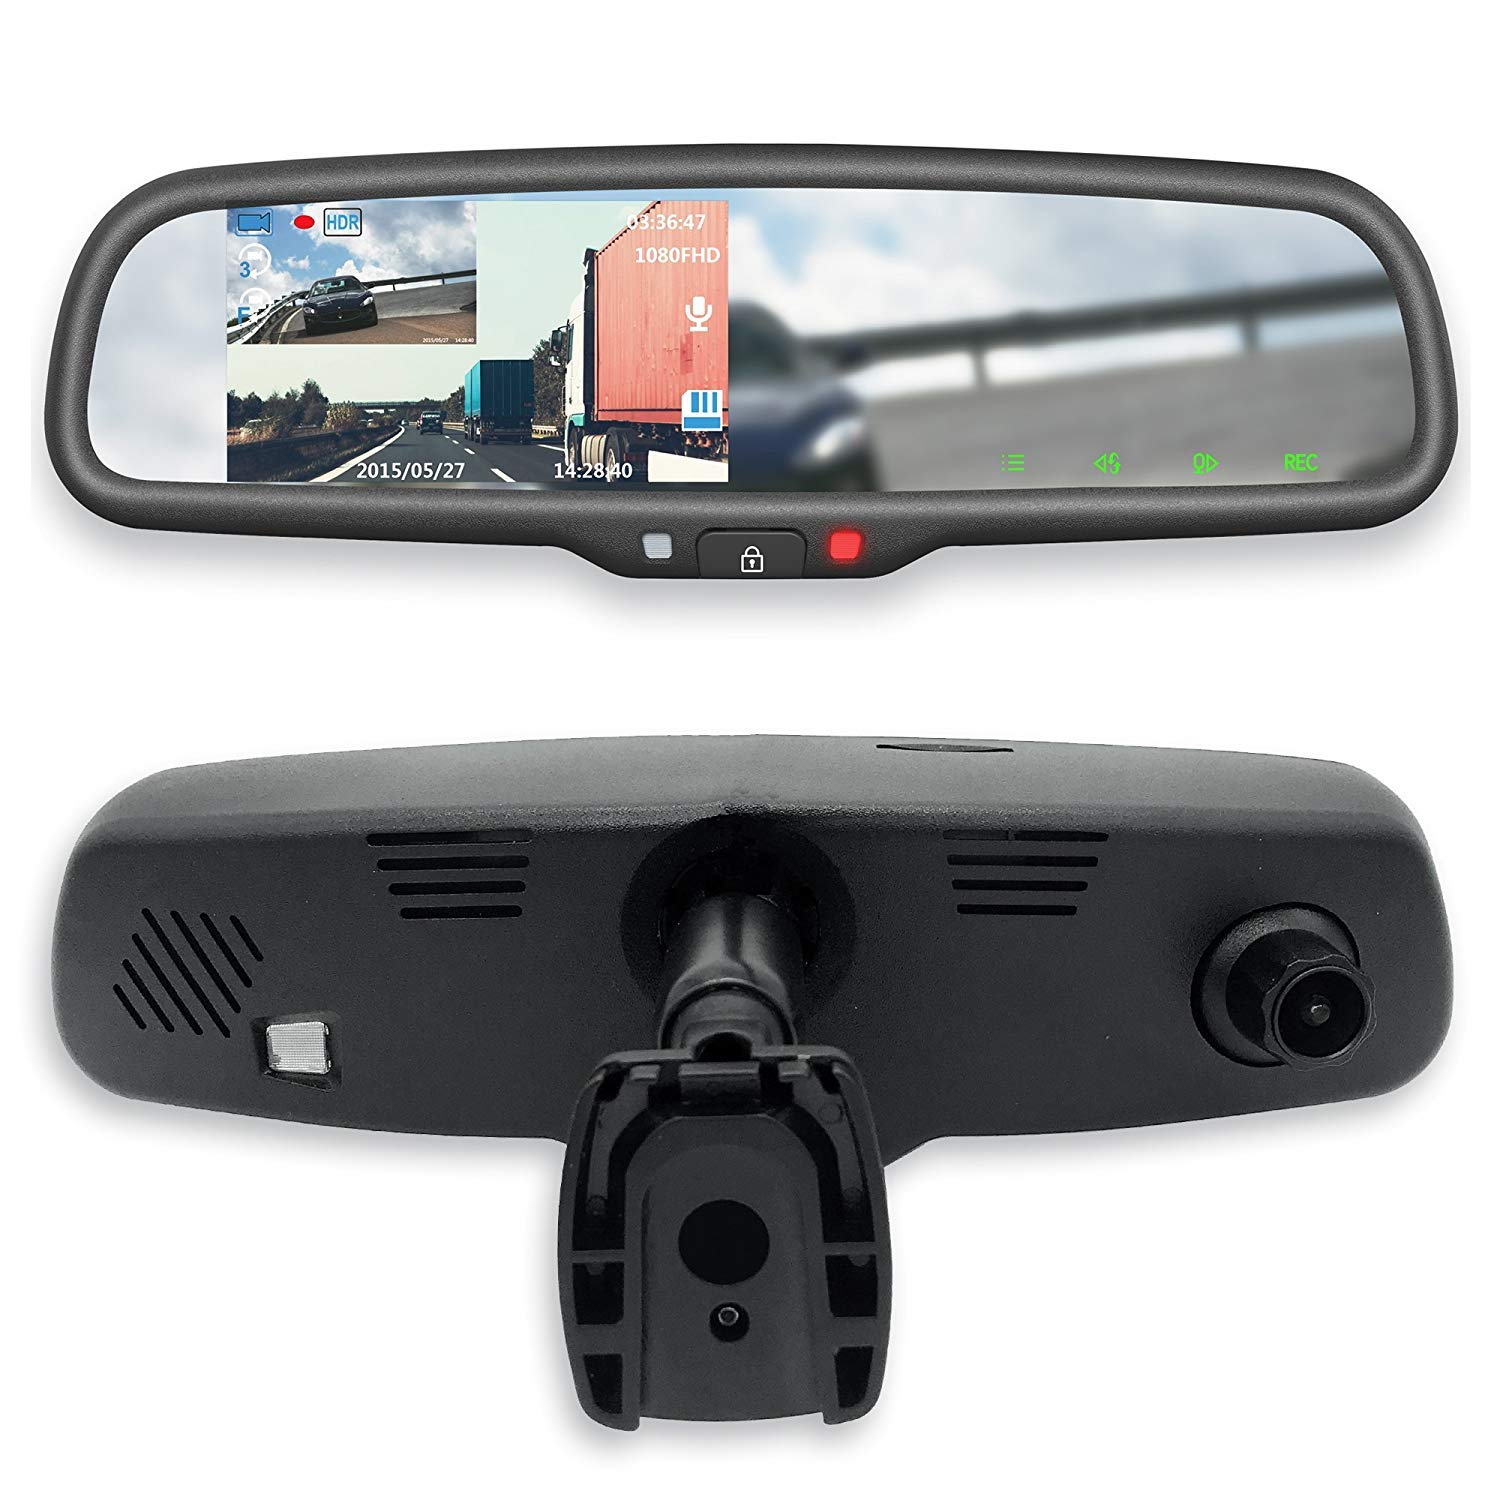 Master Tailgaters 4.3'' LCD Rear View Mirror with 1080P 30FPS, 720P 60FPS HD DVR Recorder with Superior Night Vision + Backup Camera Enabled